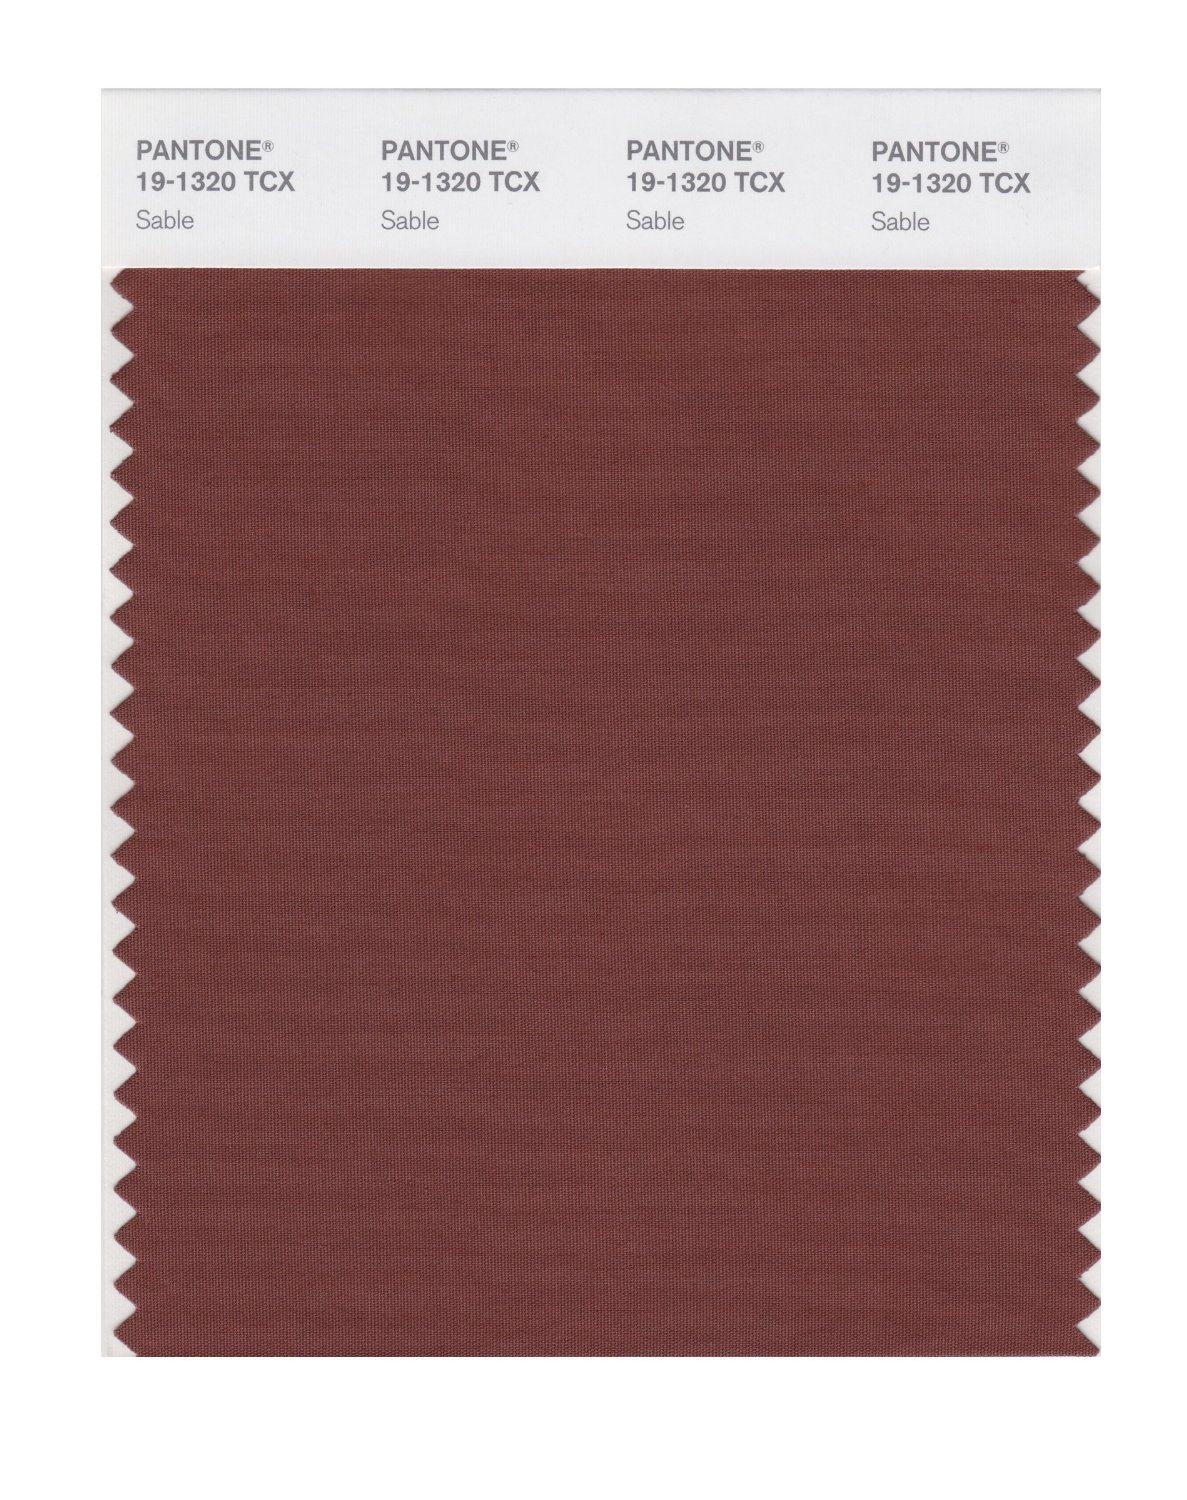 Pantone Smart Swatch 19-1320 Sable